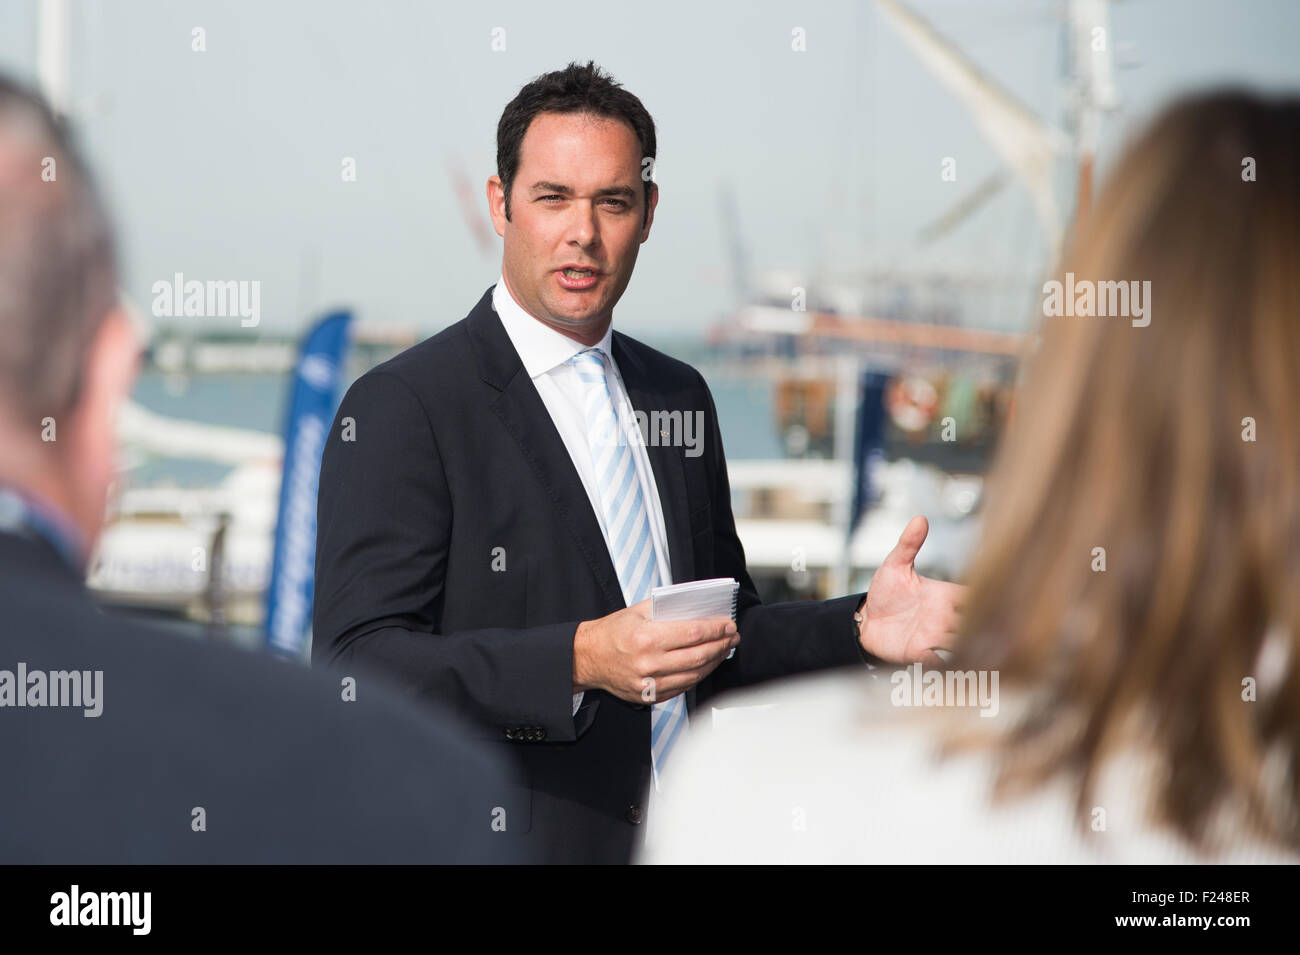 Southampton, UK. 11th September 2015. Southampton Boat Show 2015. Will Green, Sales Director of Princess launches Stock Photo